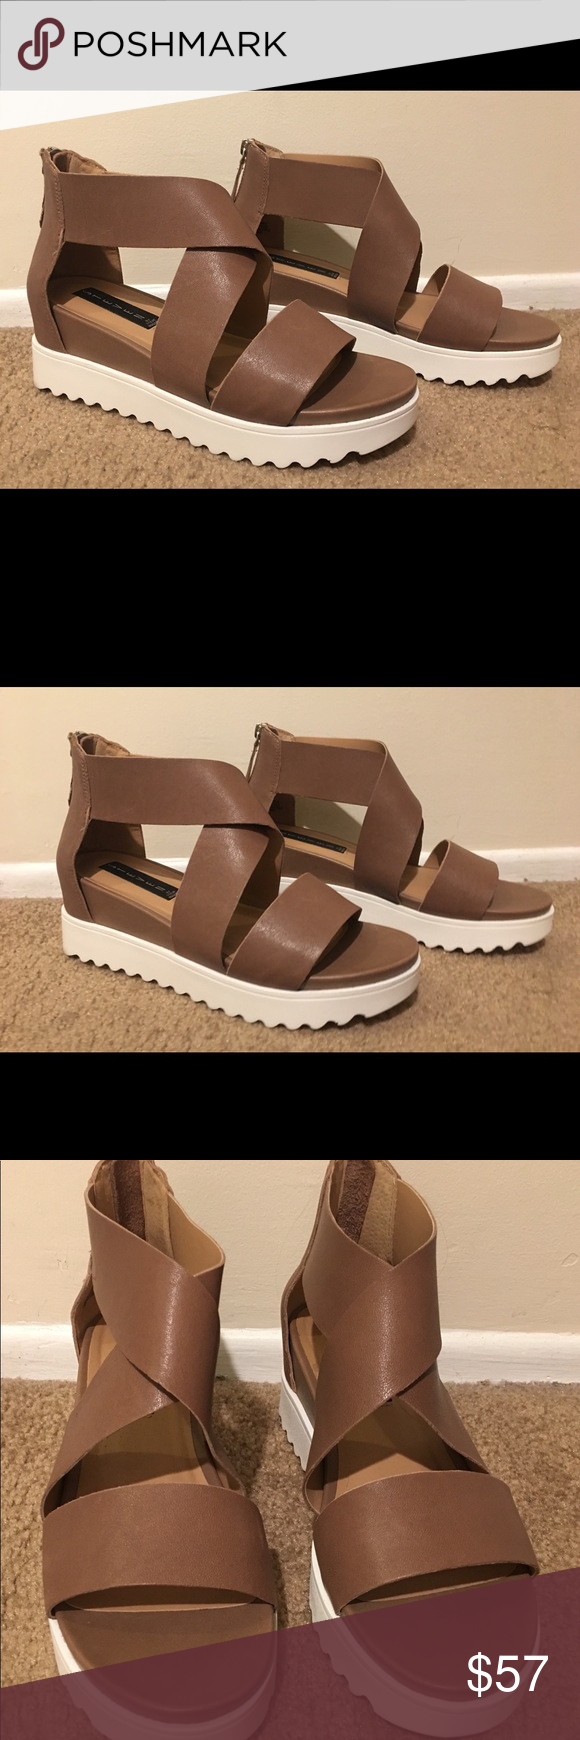 91552ff8360 Steve Madden Keanna platform sandal Pristine—never worn beautiful taupe tan  with white sole and silver zipper on back- Steven By Steve Madden Shoes  Sandals